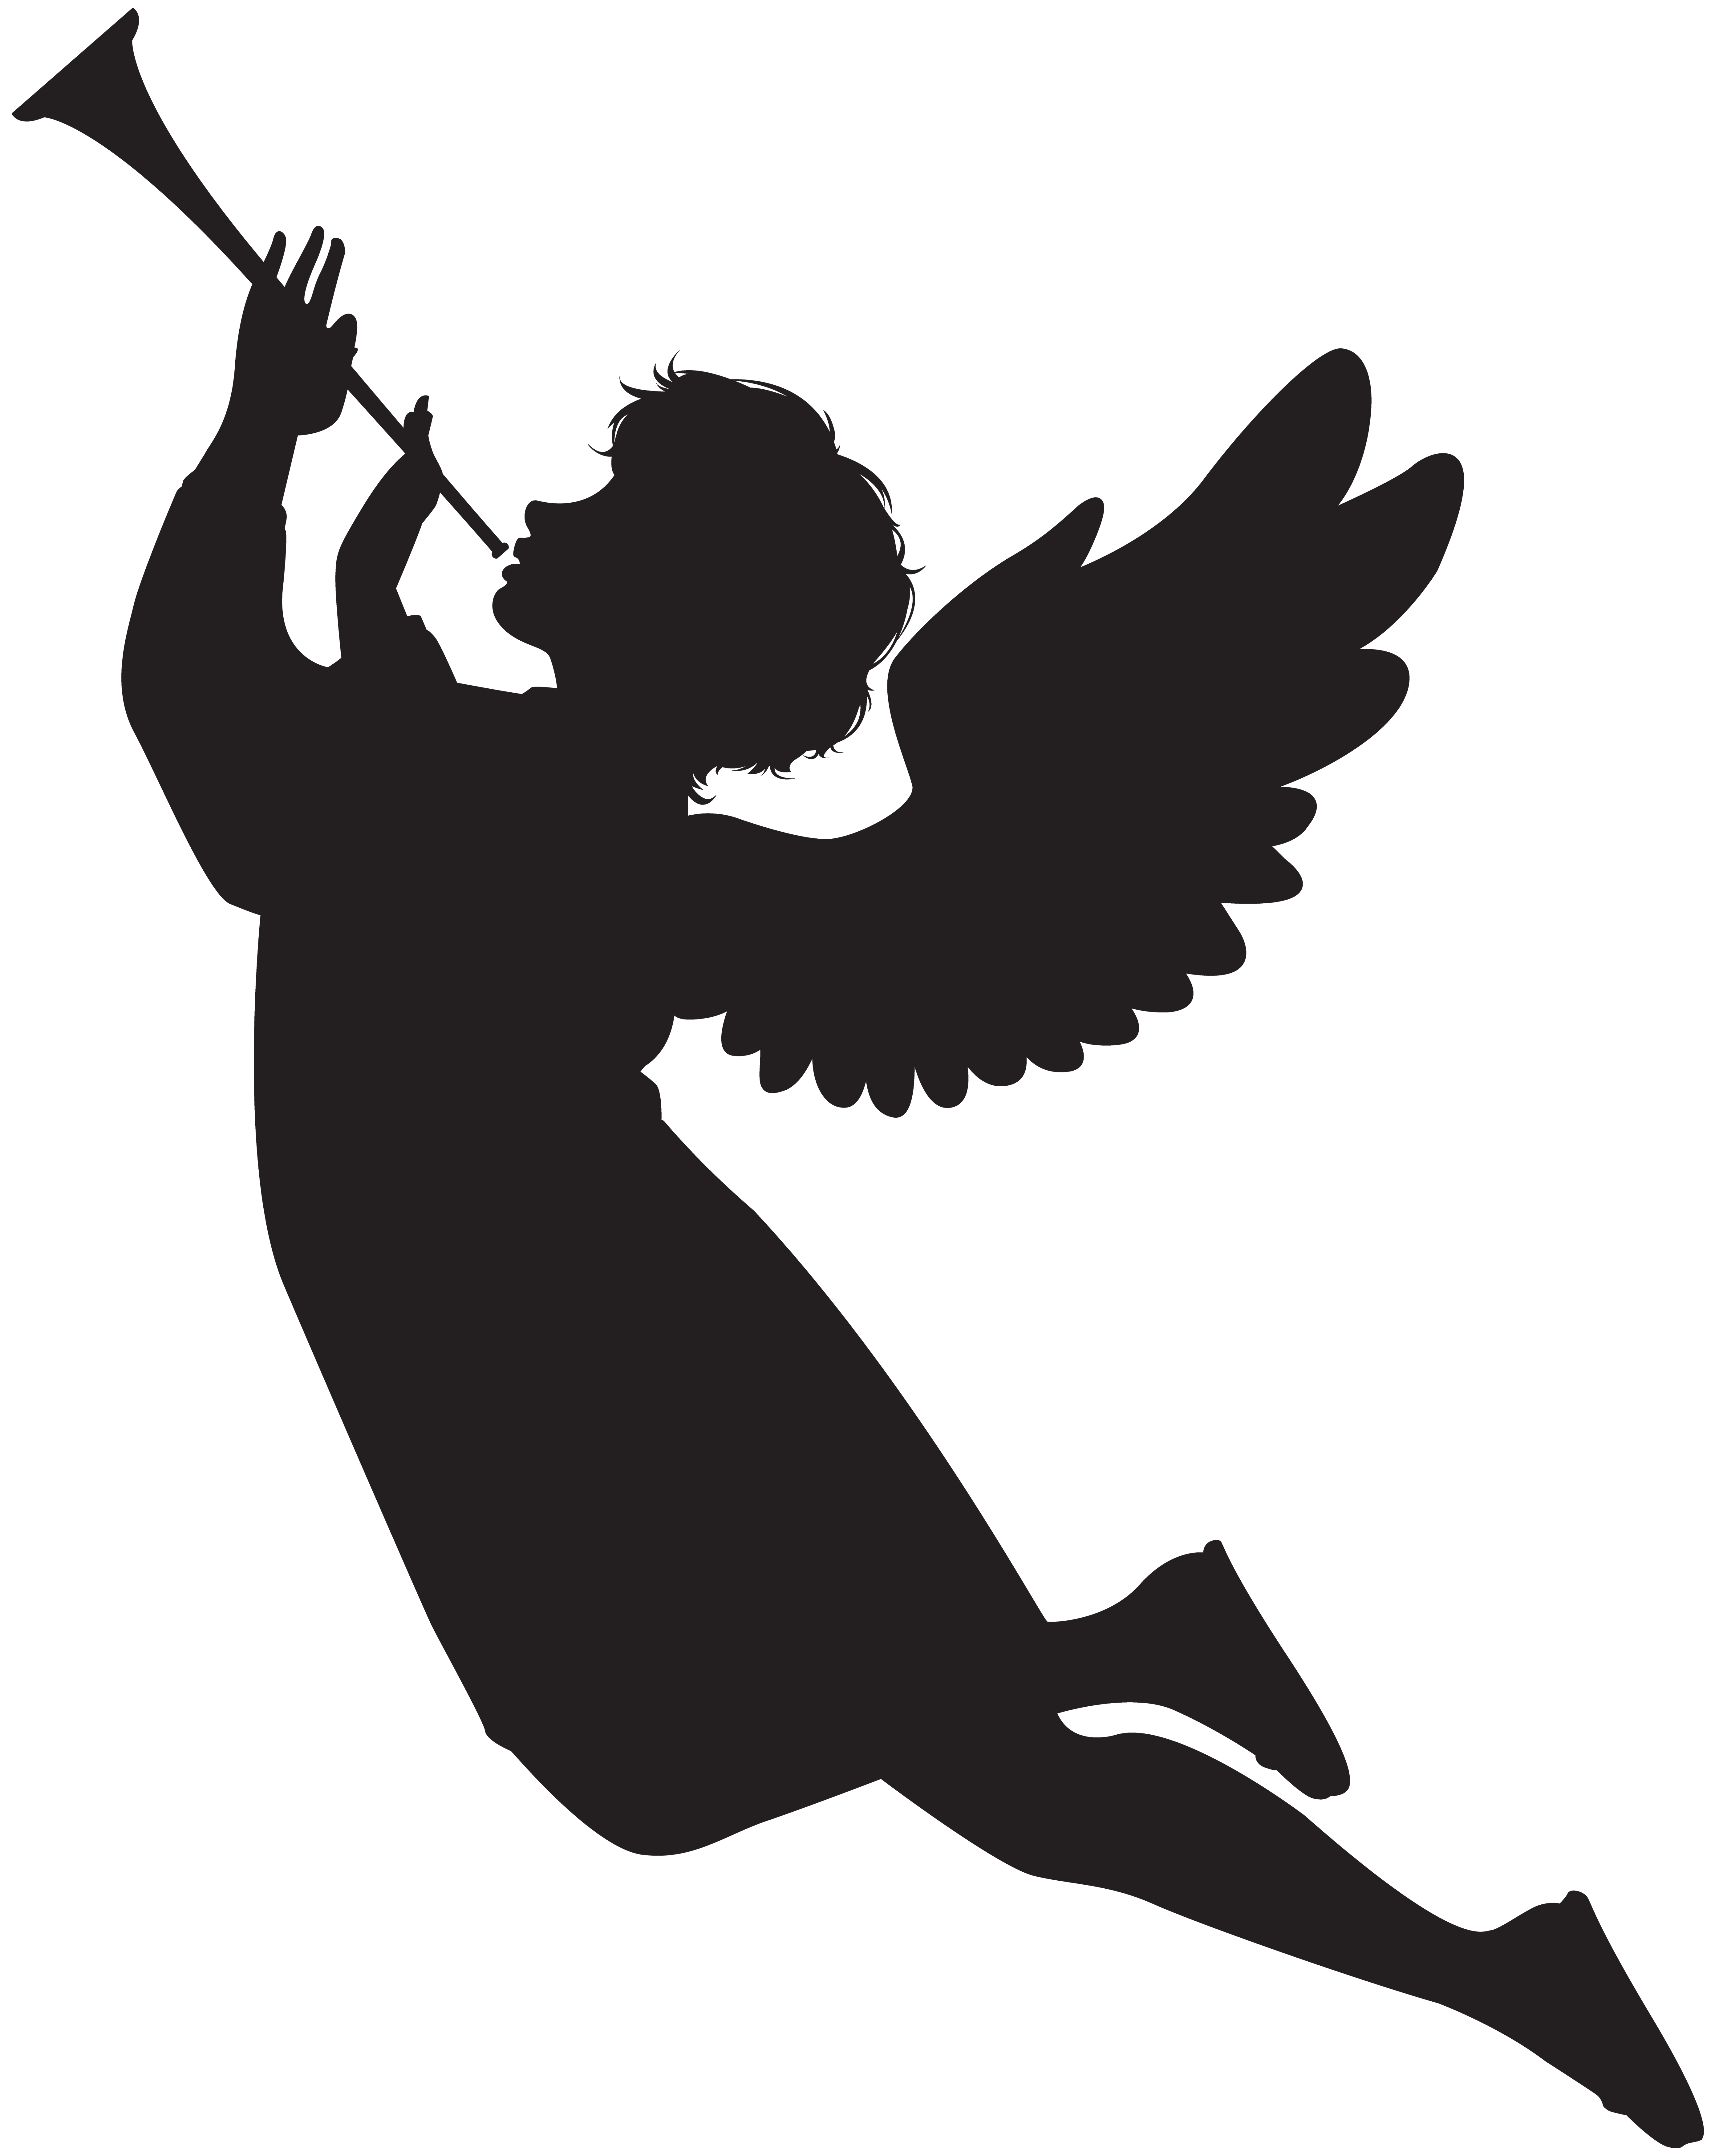 Angel silhouette png. With fanfare clip art